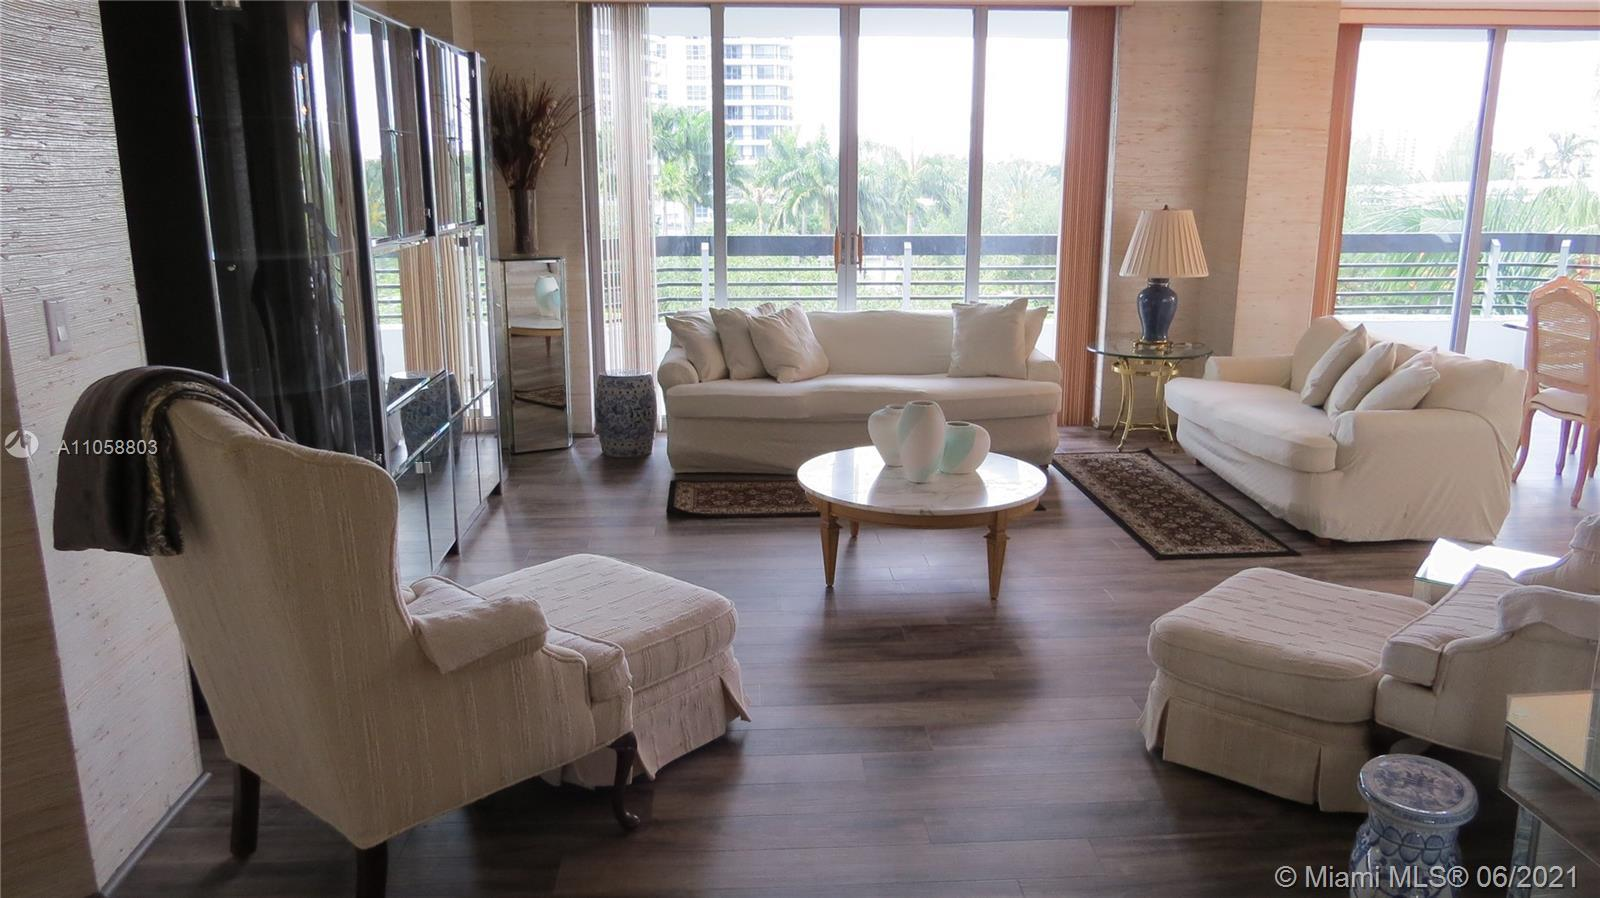 Mystic Pointe/ Tower 300/ Aventura/ 2 Beds/2 Baths/1,353 Sq. Ft/ Great location/Close to the Aventur